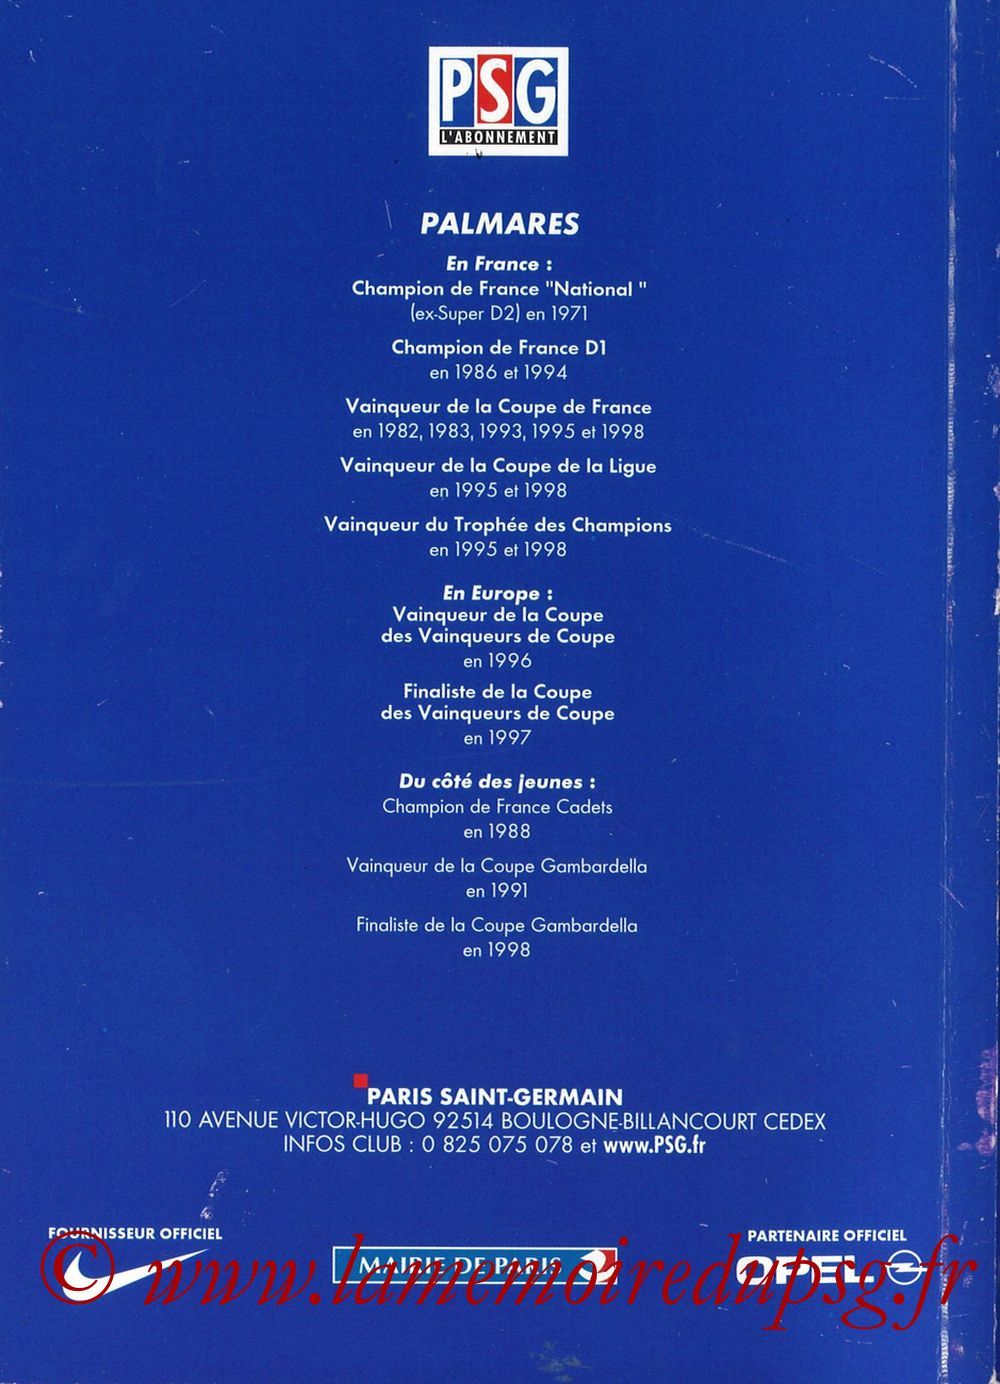 1999-00 - Guide de la Saison PSG - Pages 68